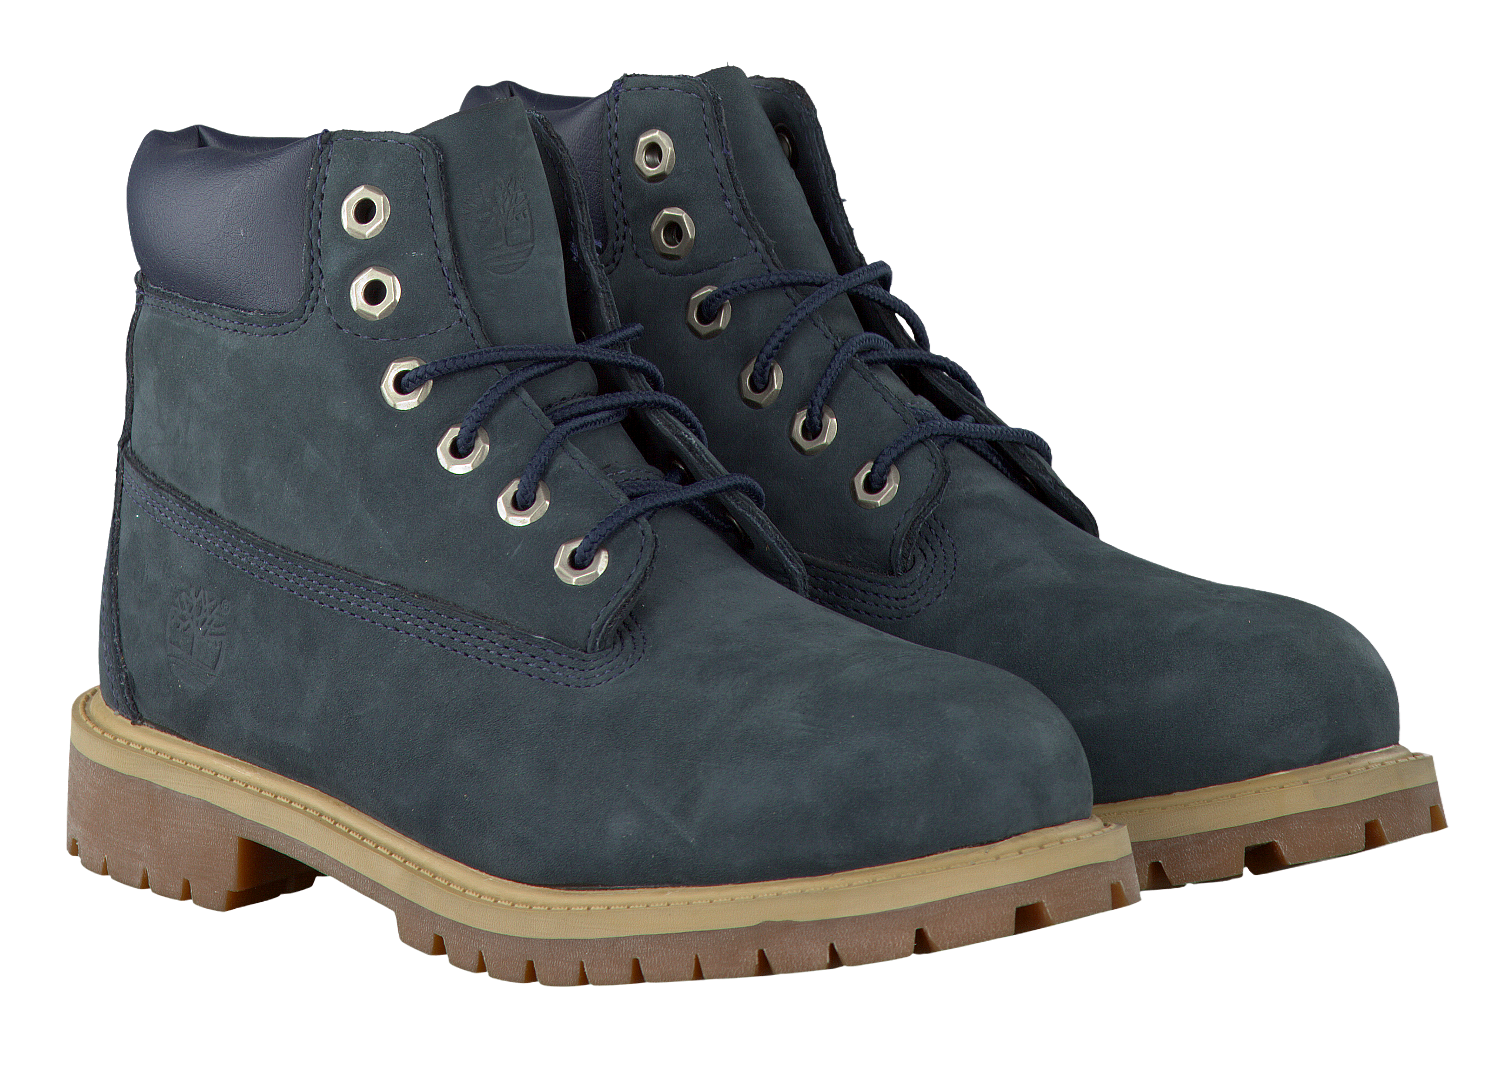 blaue timberland ankle boots 6in prm wp boot kids jetzt im sale. Black Bedroom Furniture Sets. Home Design Ideas